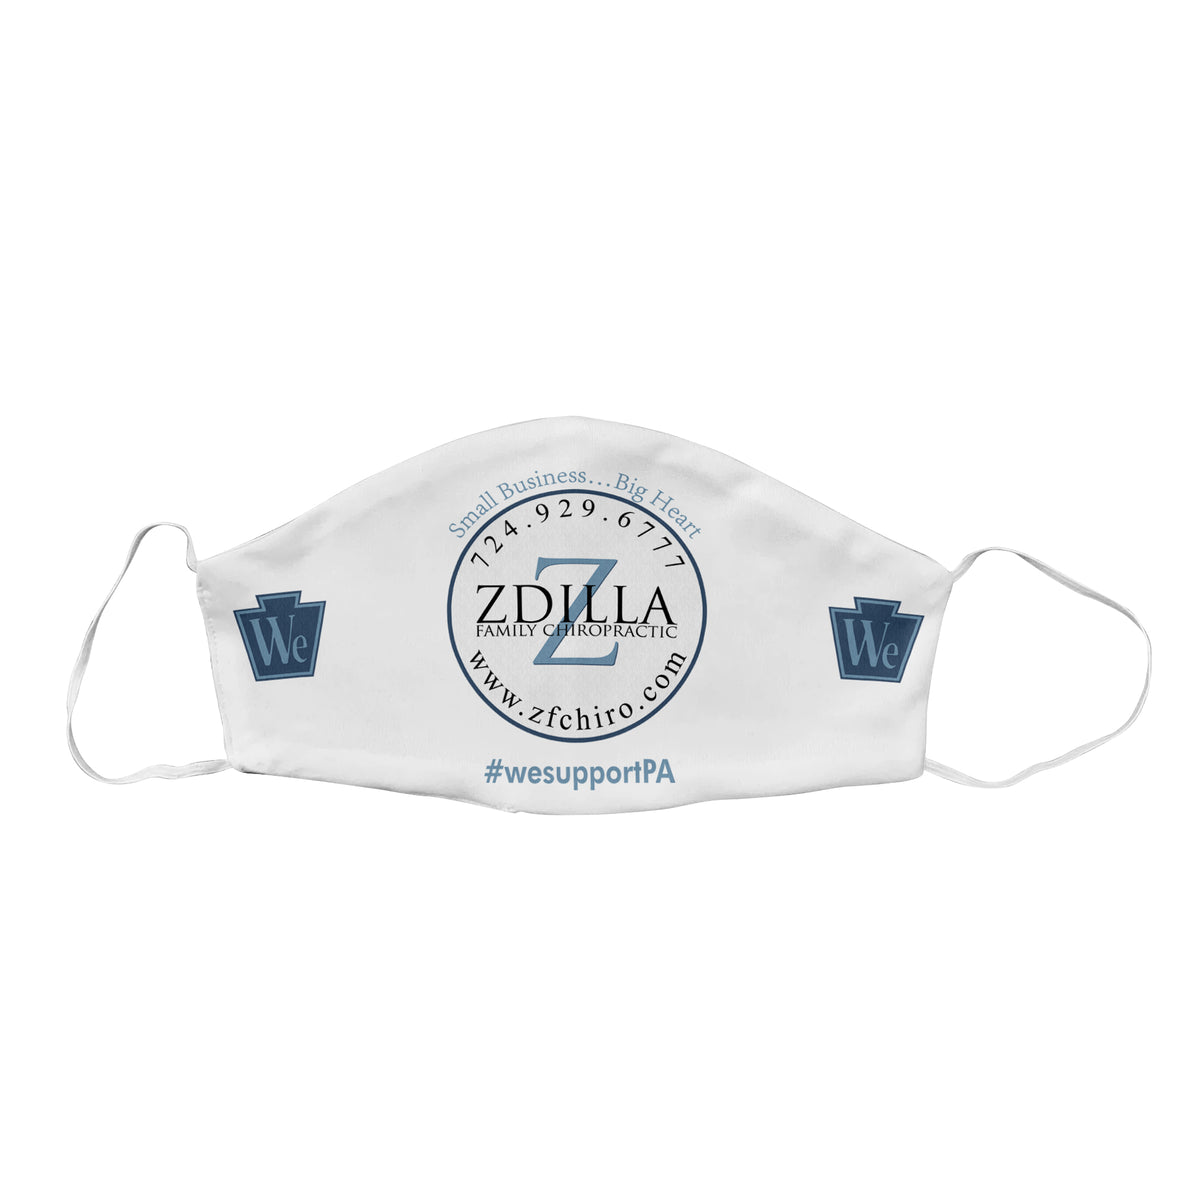 Zdilla Family Chiropractic We Support PA Face Mask